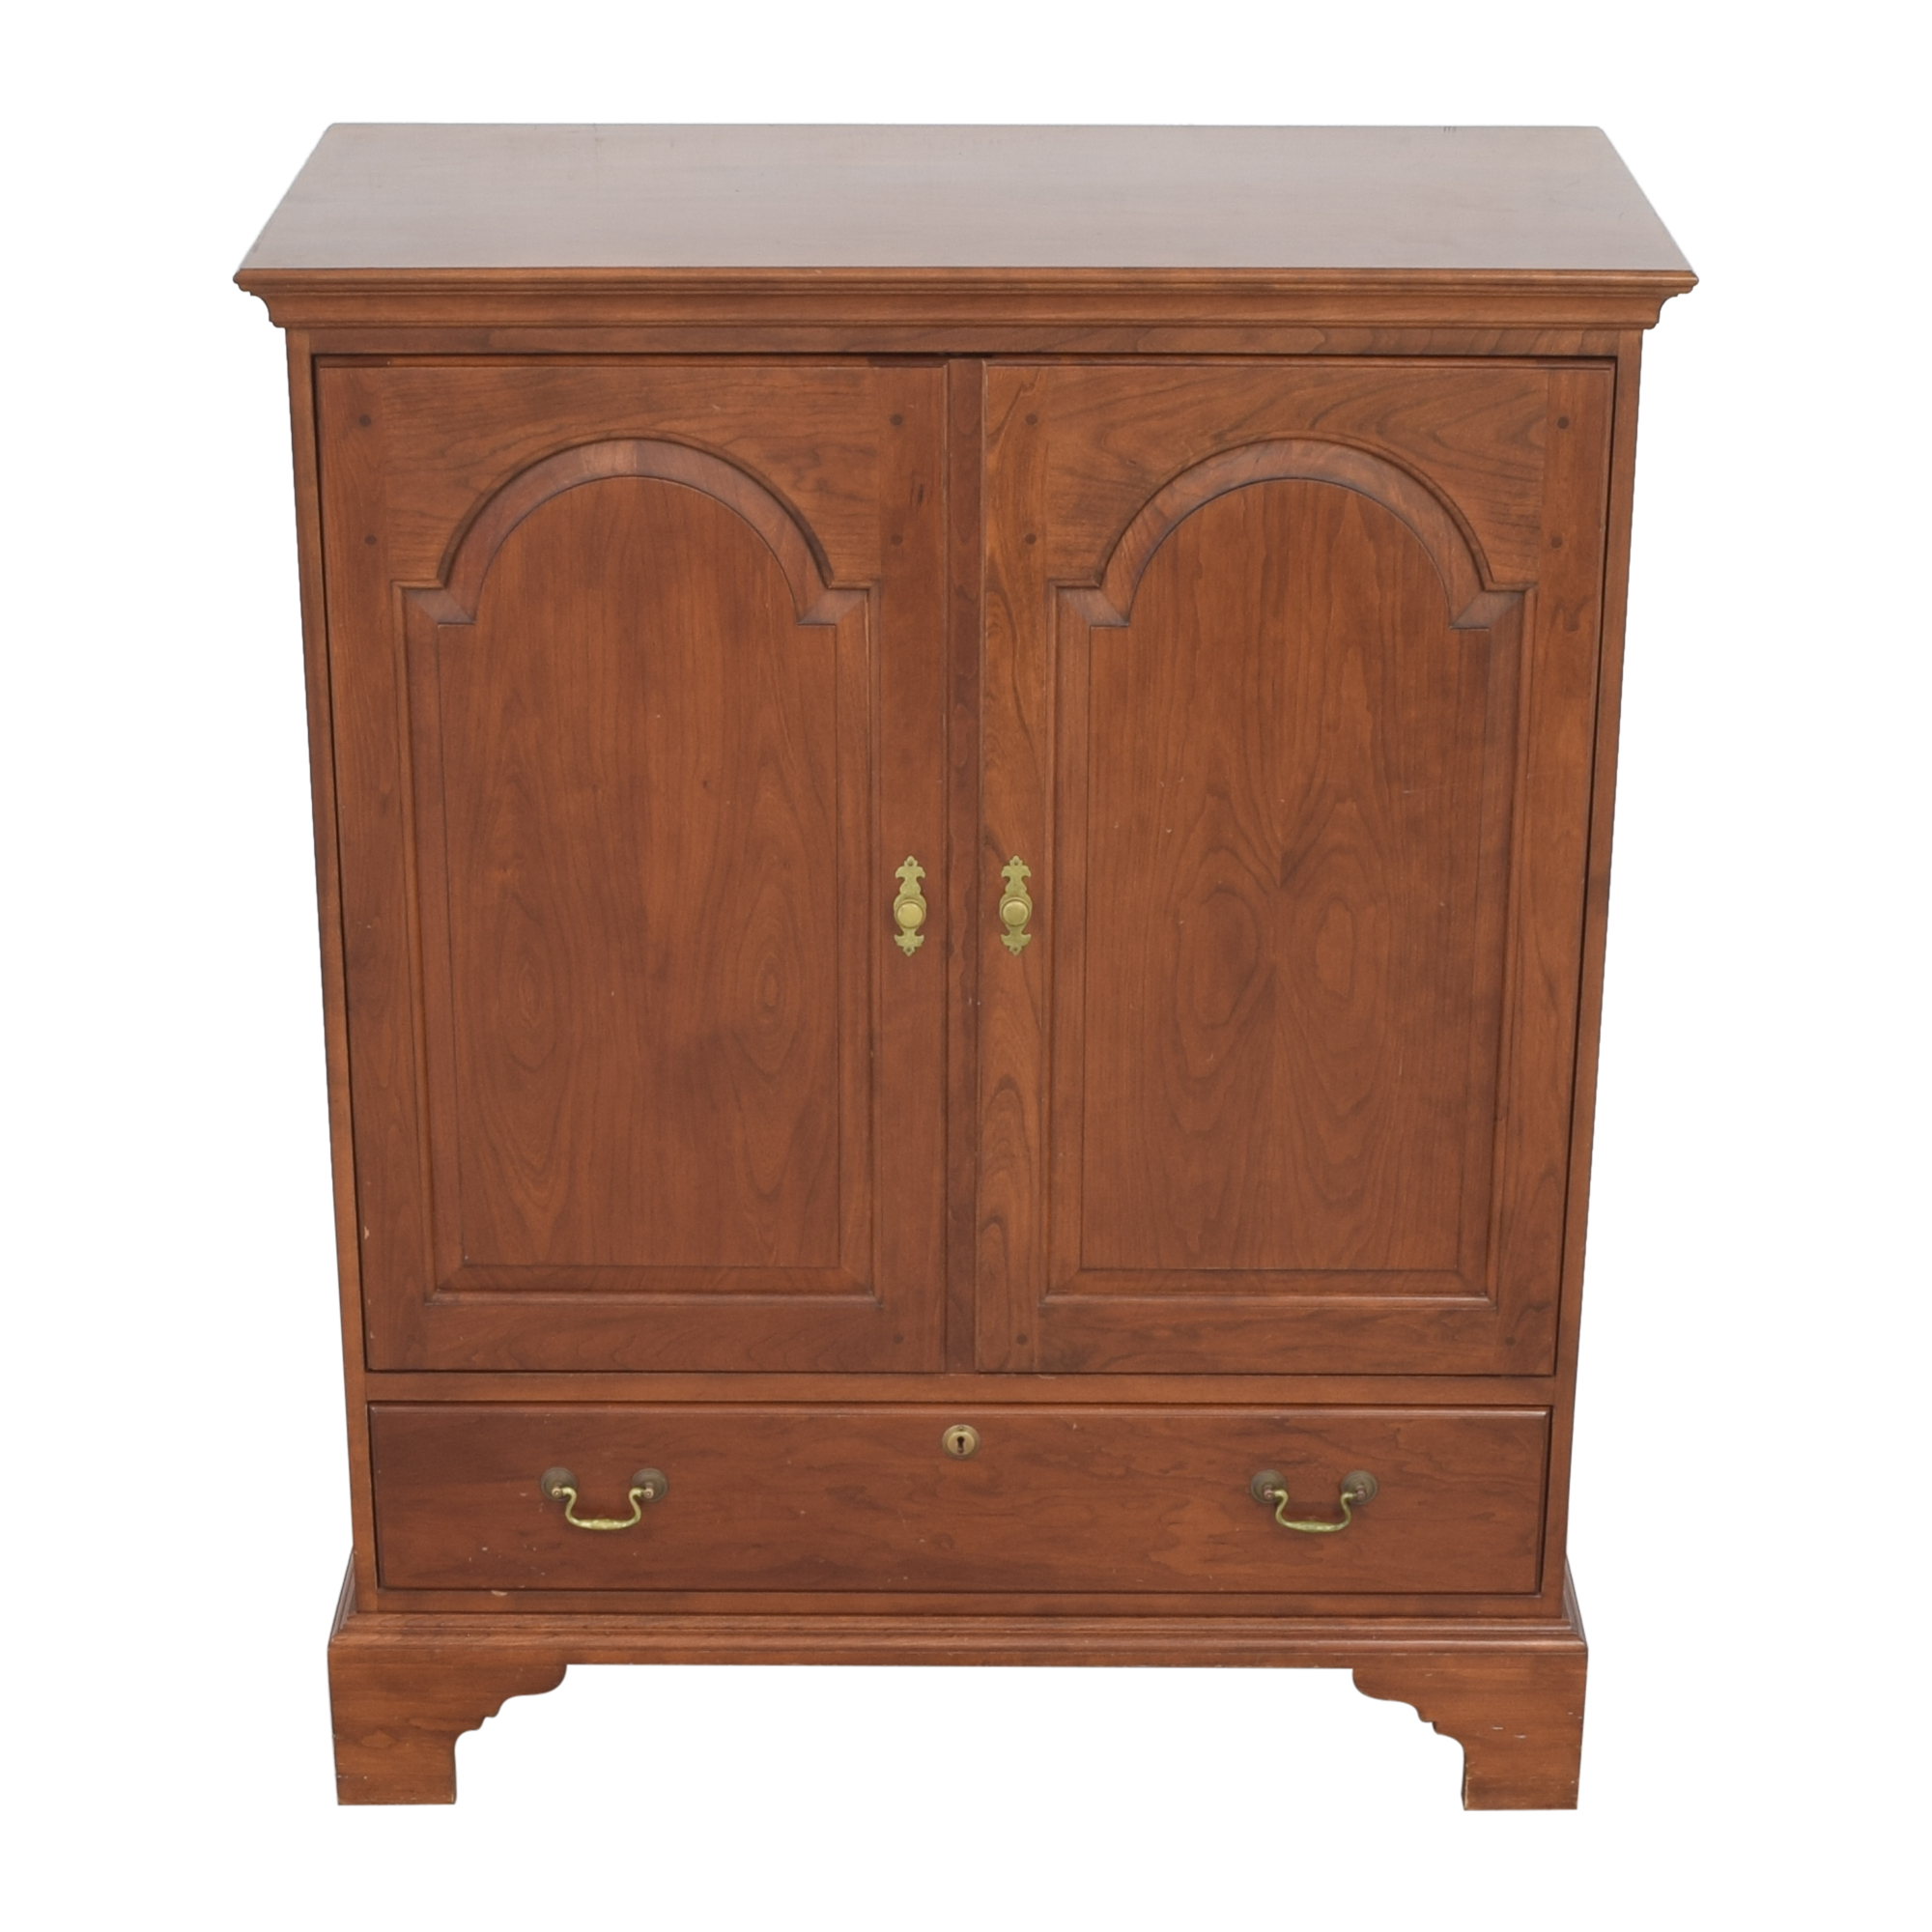 Stickley Furniture Stickley Furniture Media Cabinet dimensions